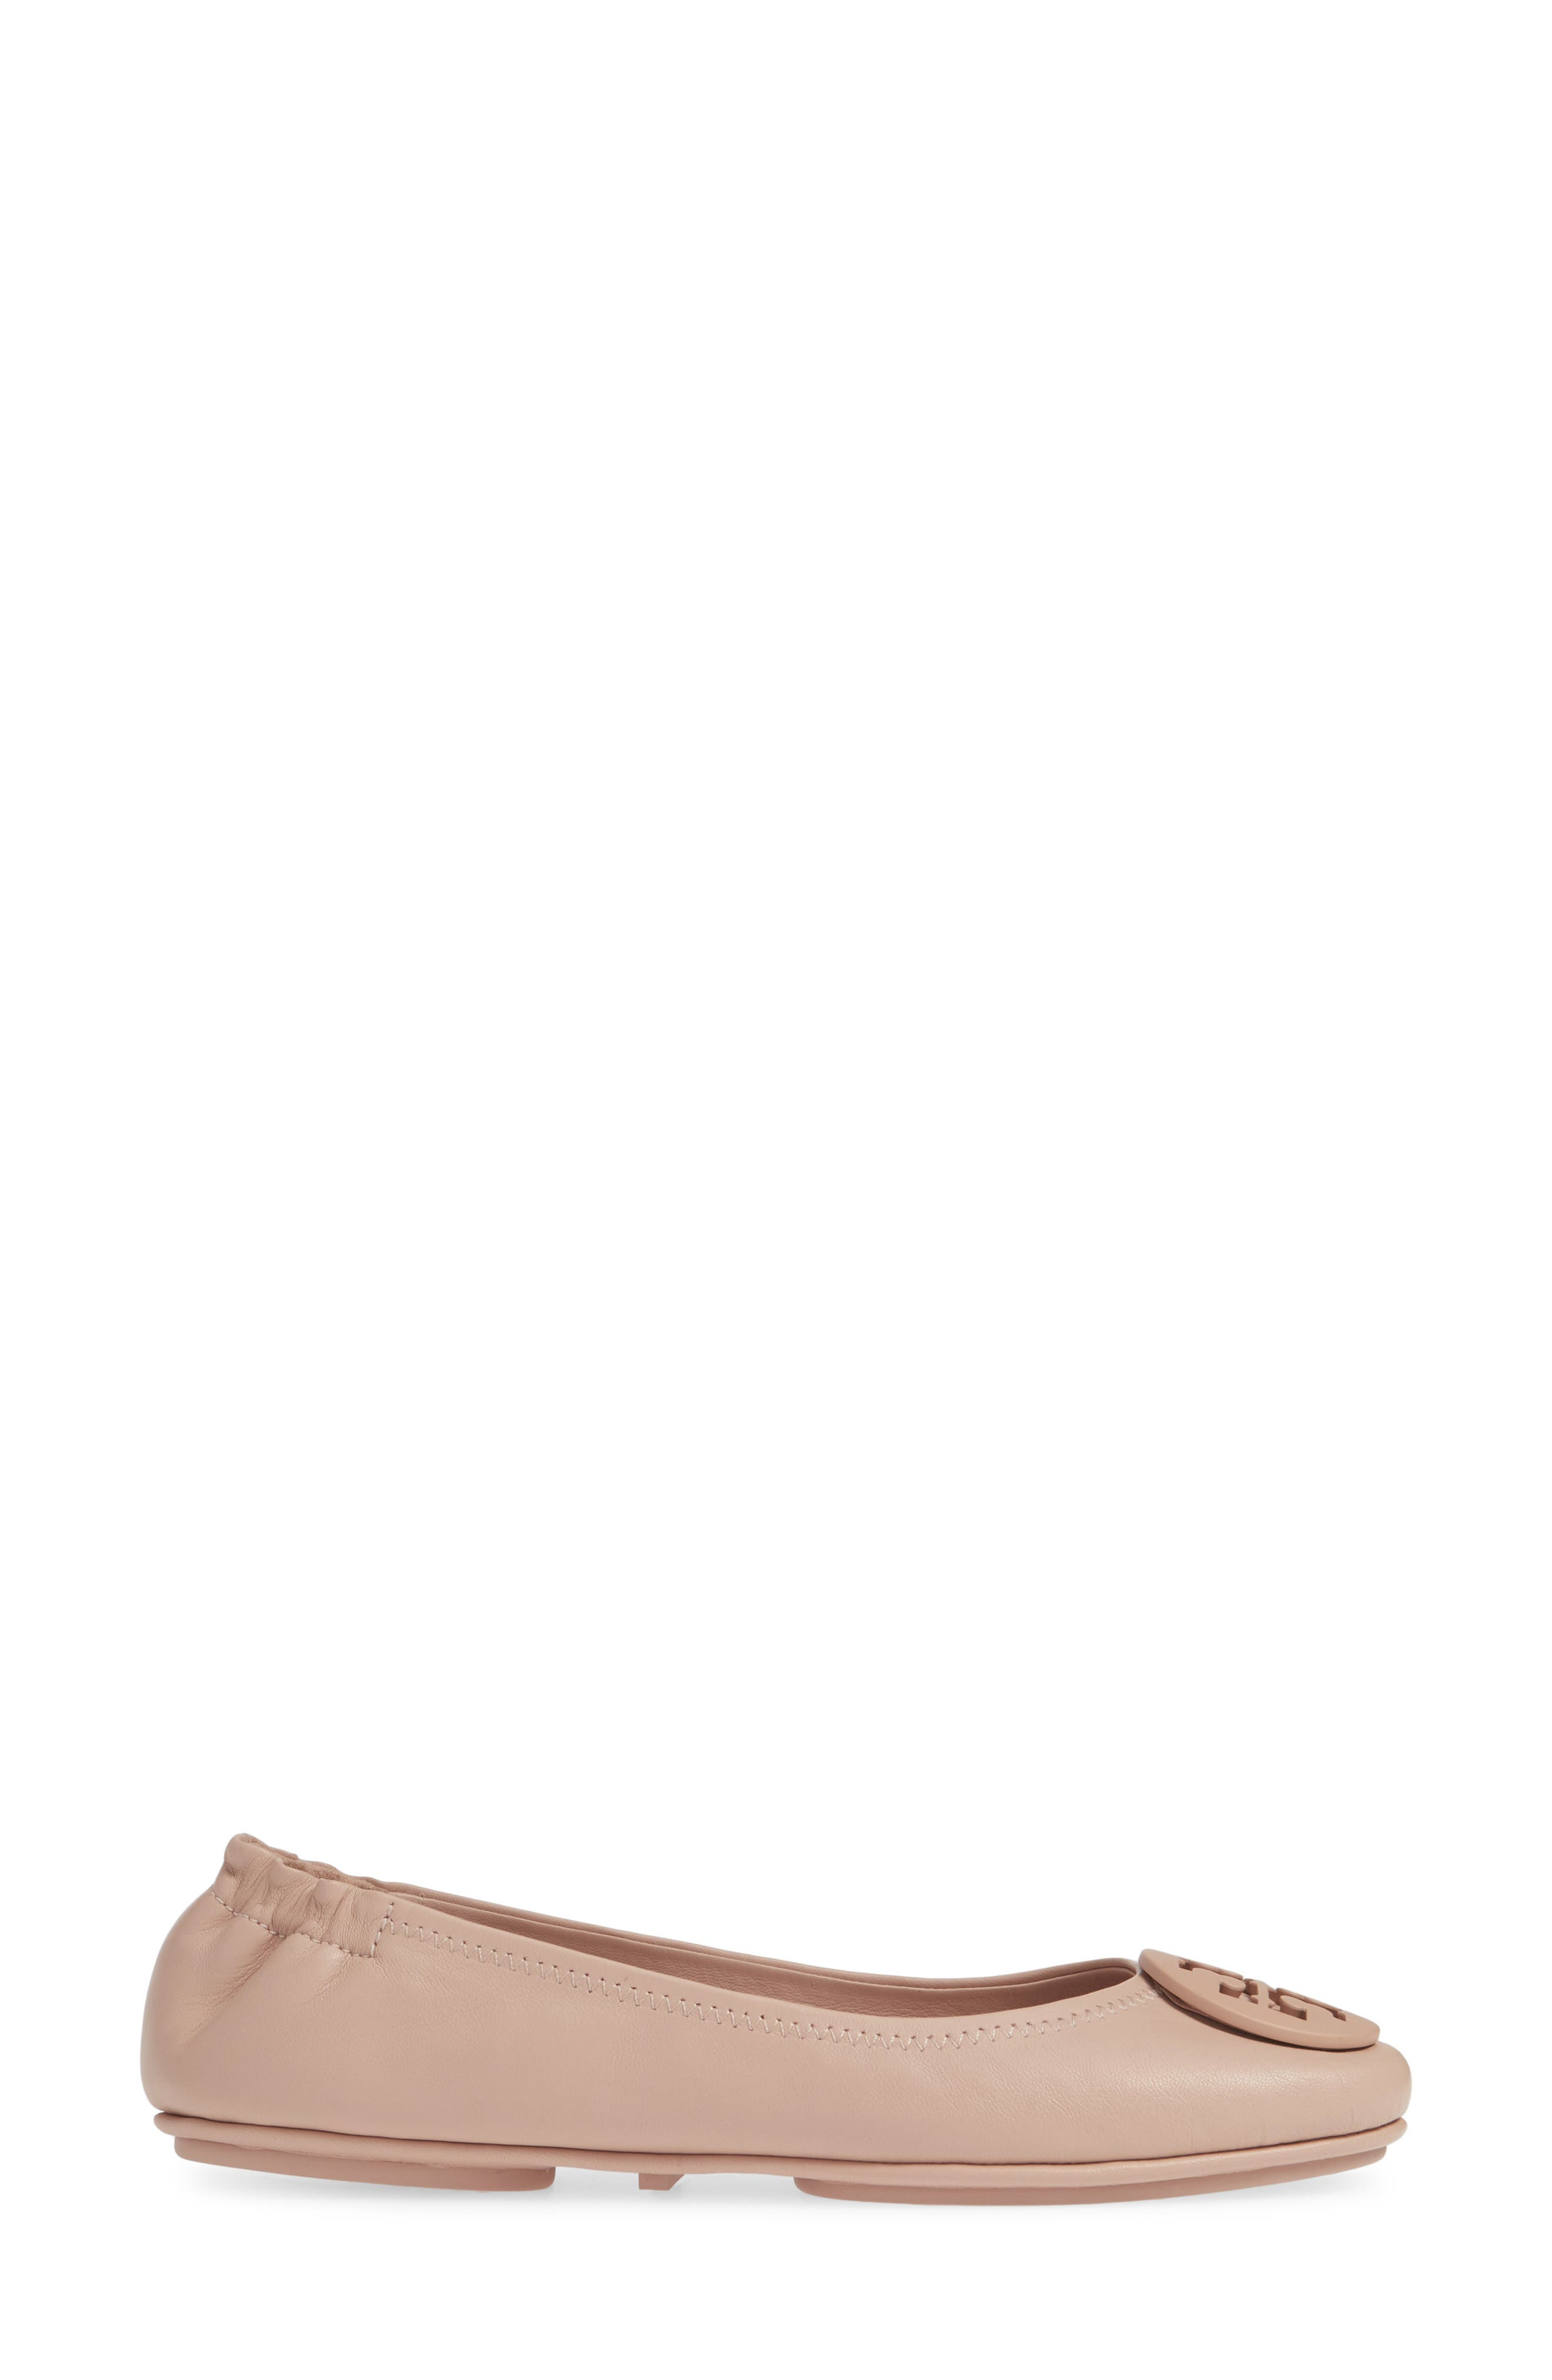 TORY BURCH, 'Minnie' Travel Ballet Flat, Alternate thumbnail 3, color, GOAN SAND/ SAND